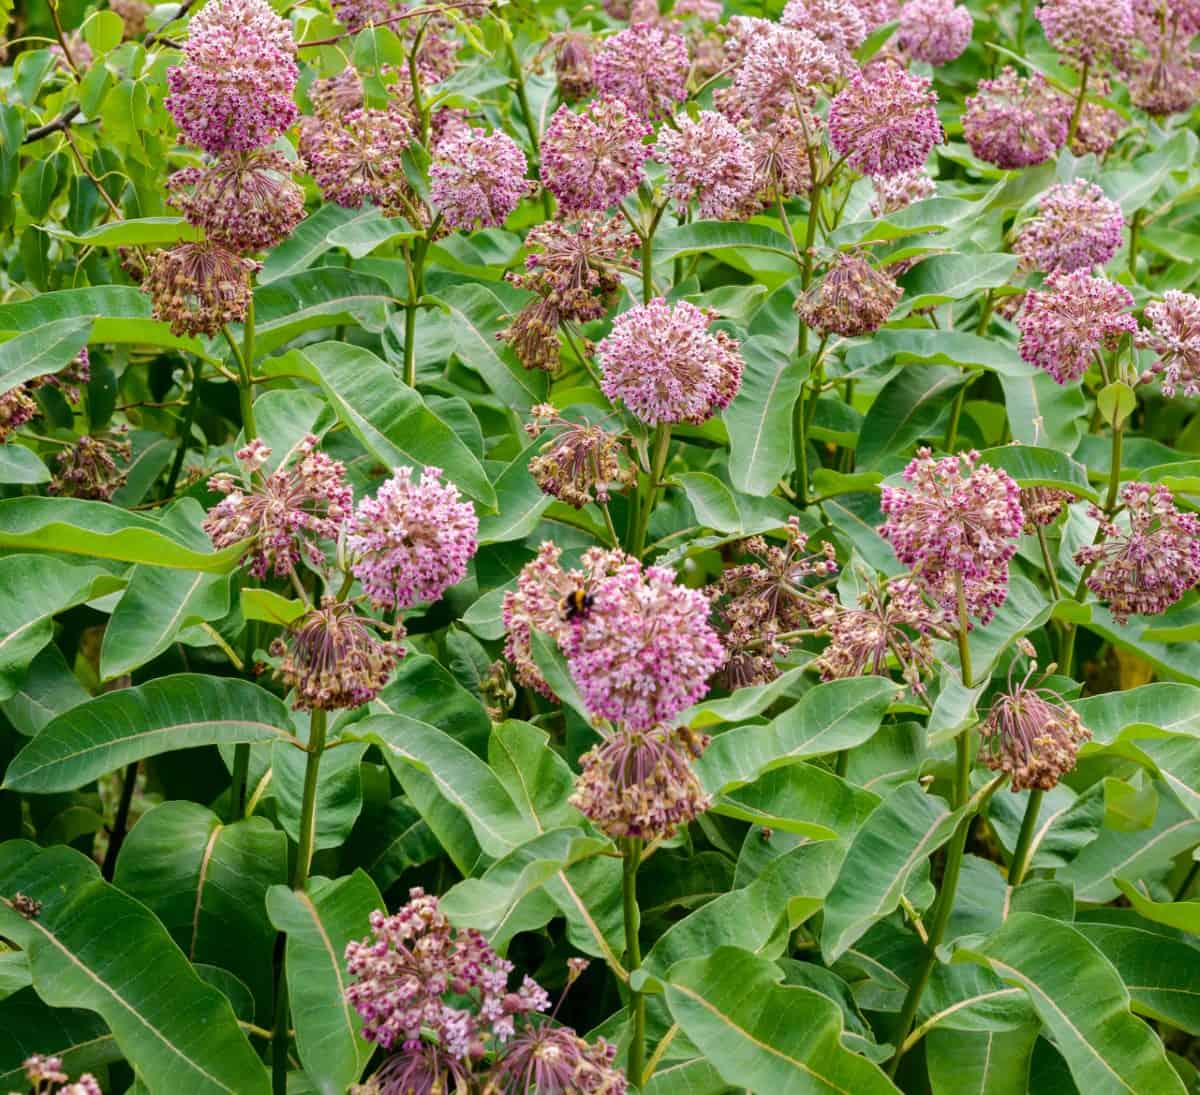 Common milkweed is the only host plant for monarch butterflies.